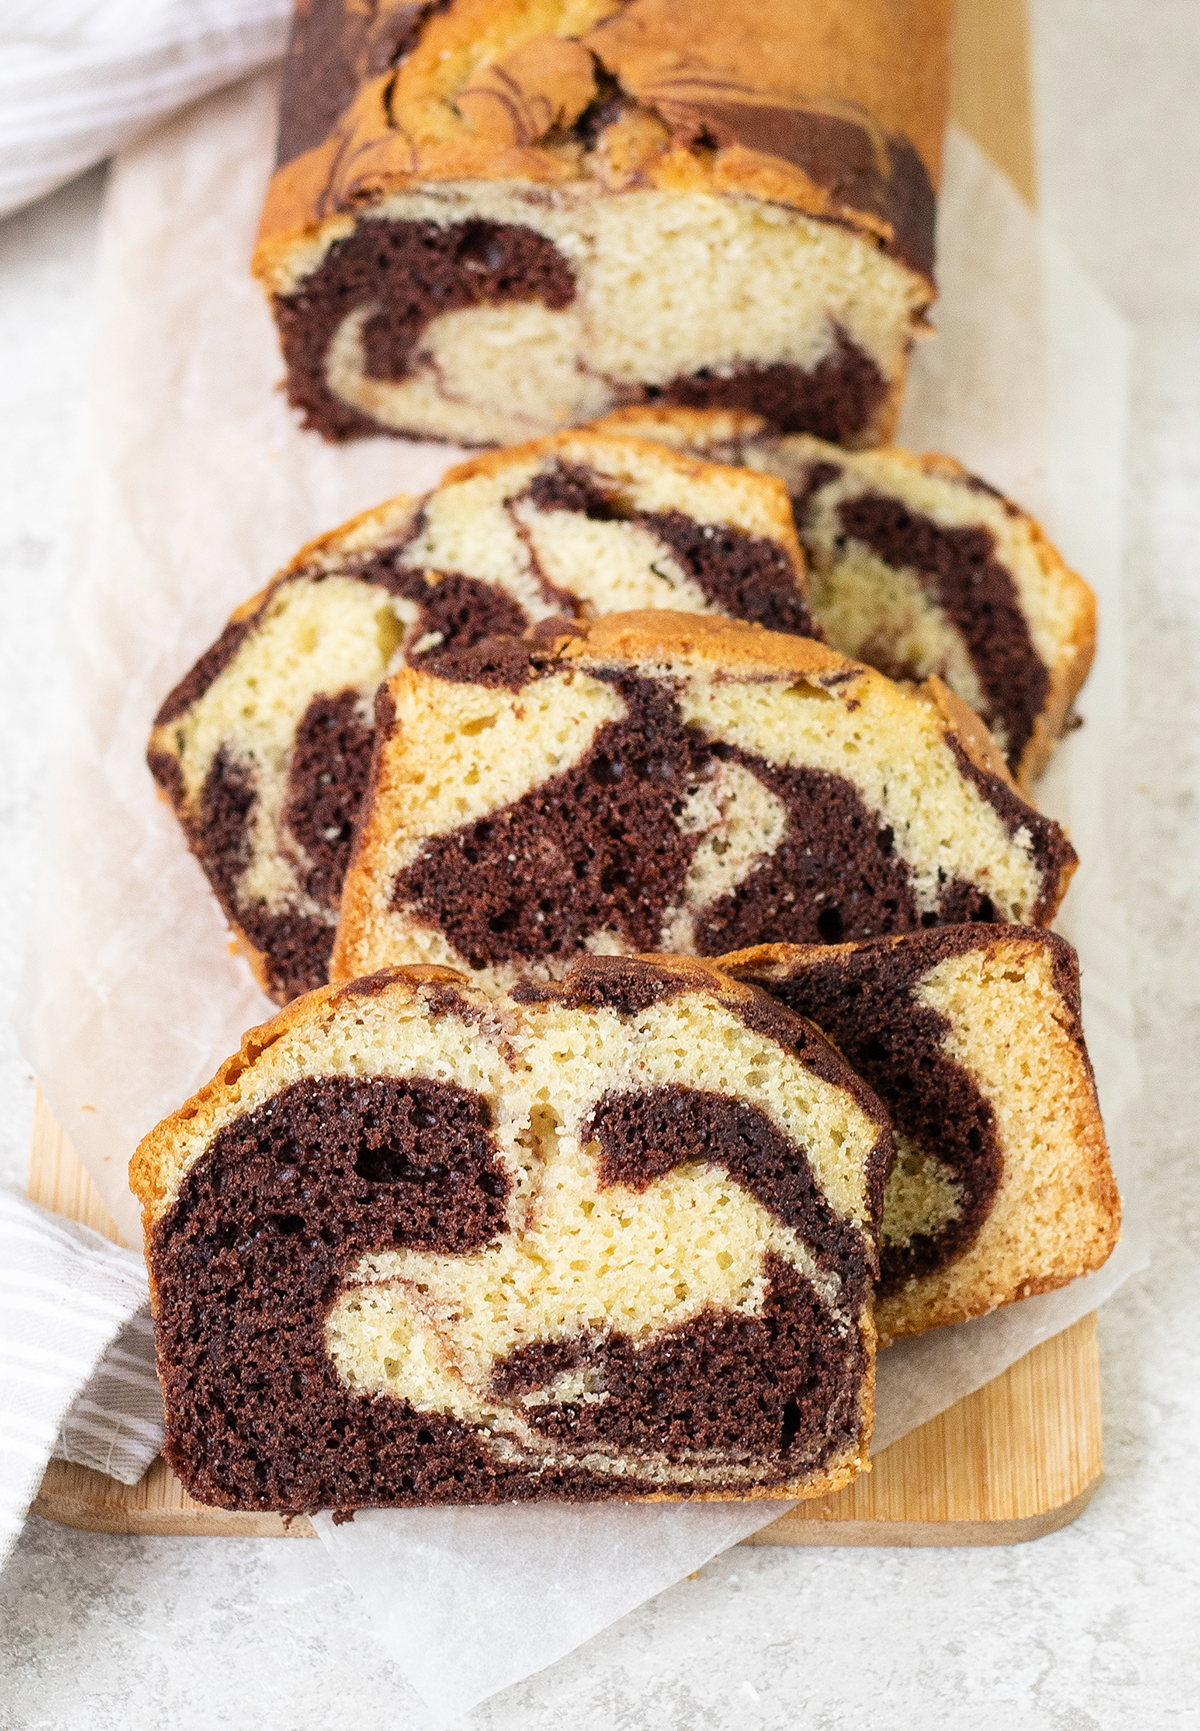 Chocolate Marble Loaf is rich, fluffy, and extraordinarily beautiful.